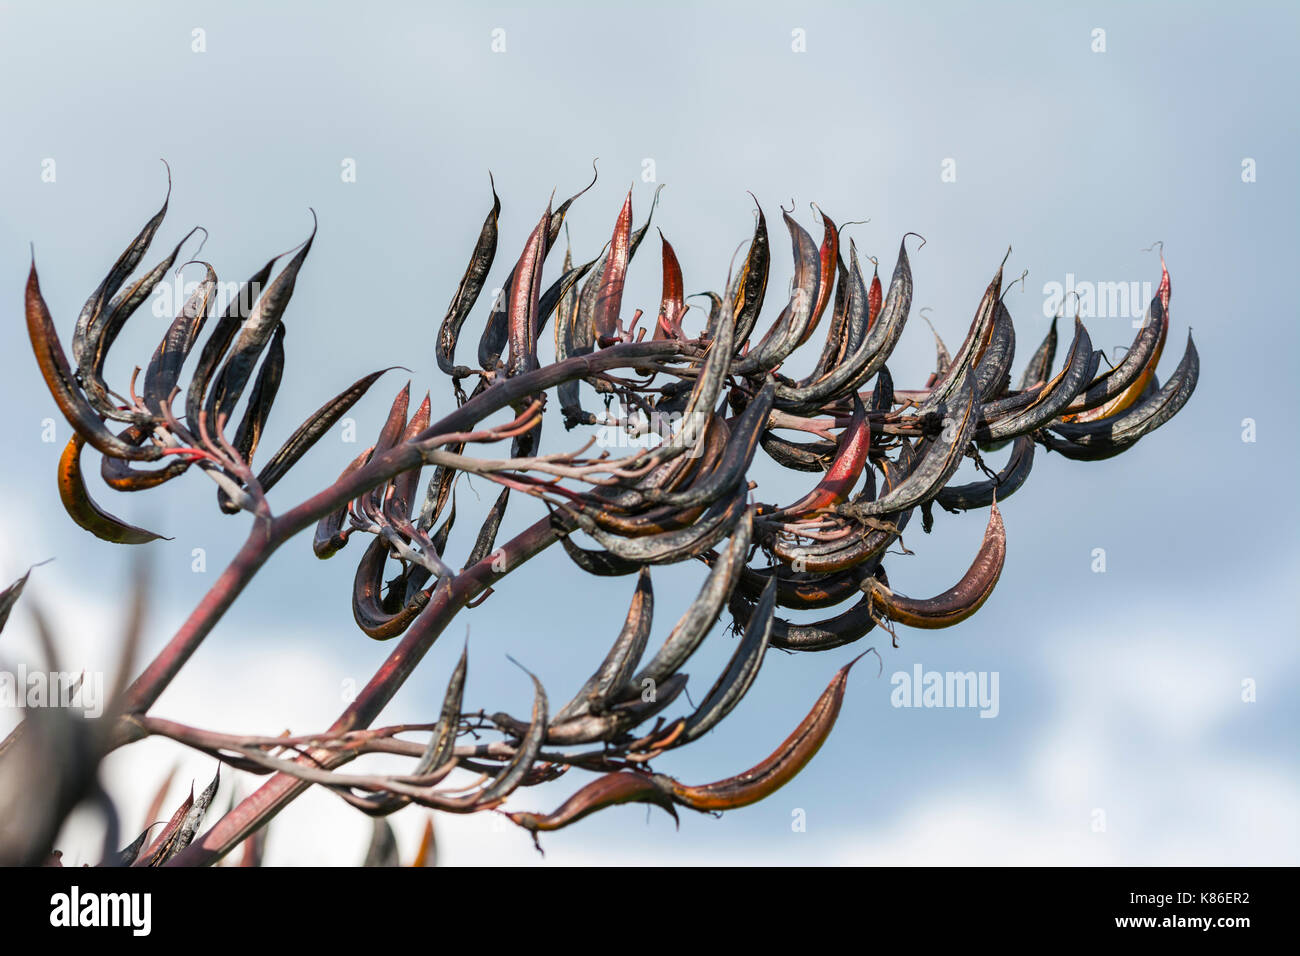 black-and-red-seed-pods-hanging-from-a-t